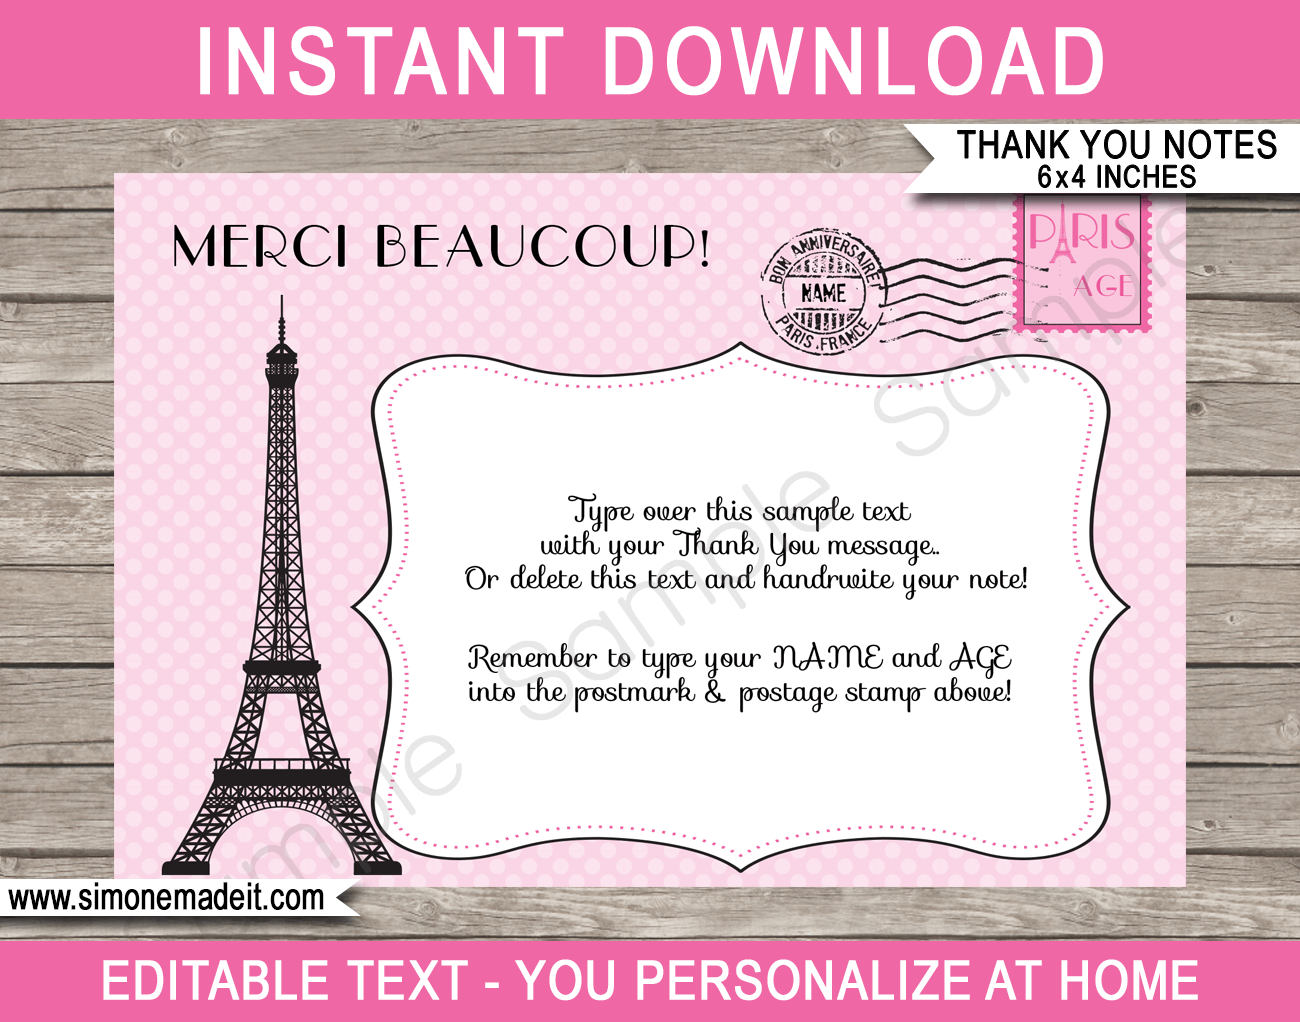 Printable Paris Birthday Party Thank You Cards Template - Favor Tags - Editable Text PDF - Instant Download via simonemadeit.com